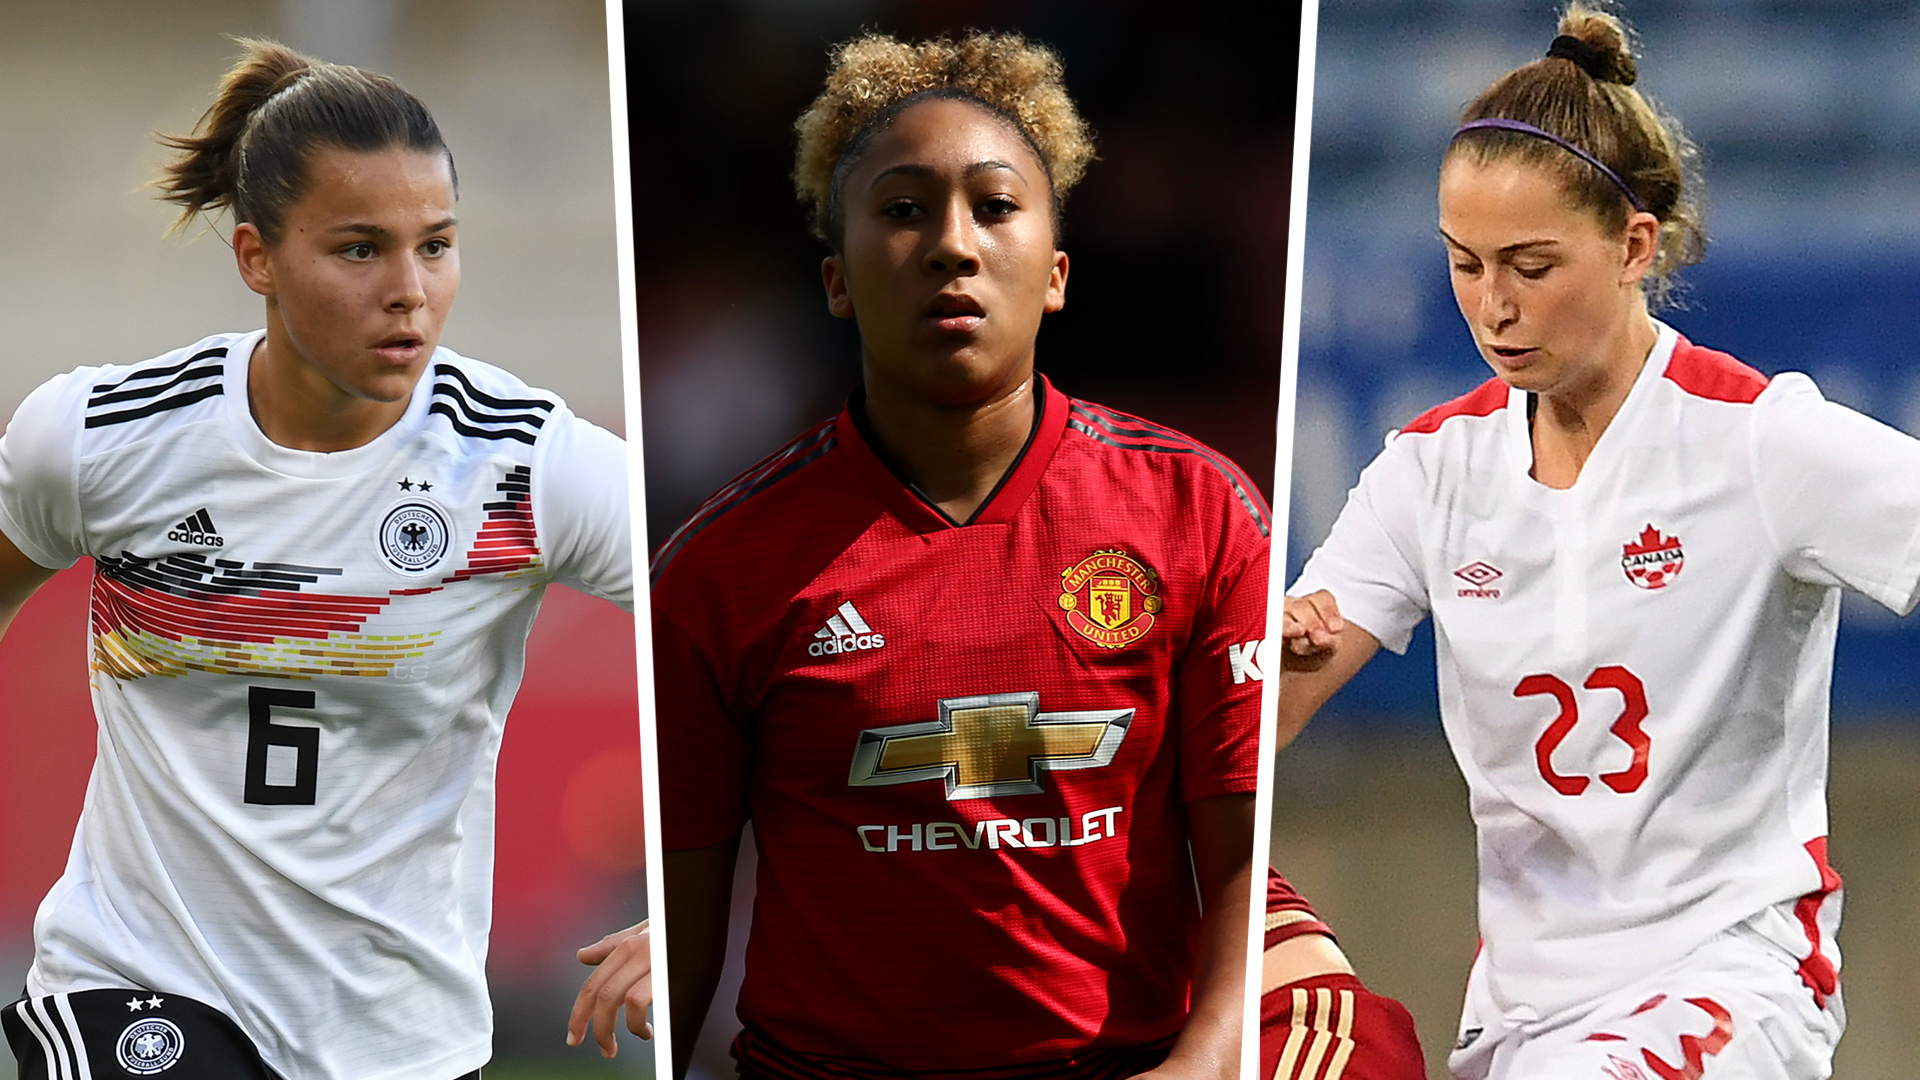 Oberdorf, Huitema & 15 teenage stars to watch out for in Europe in 2019-20